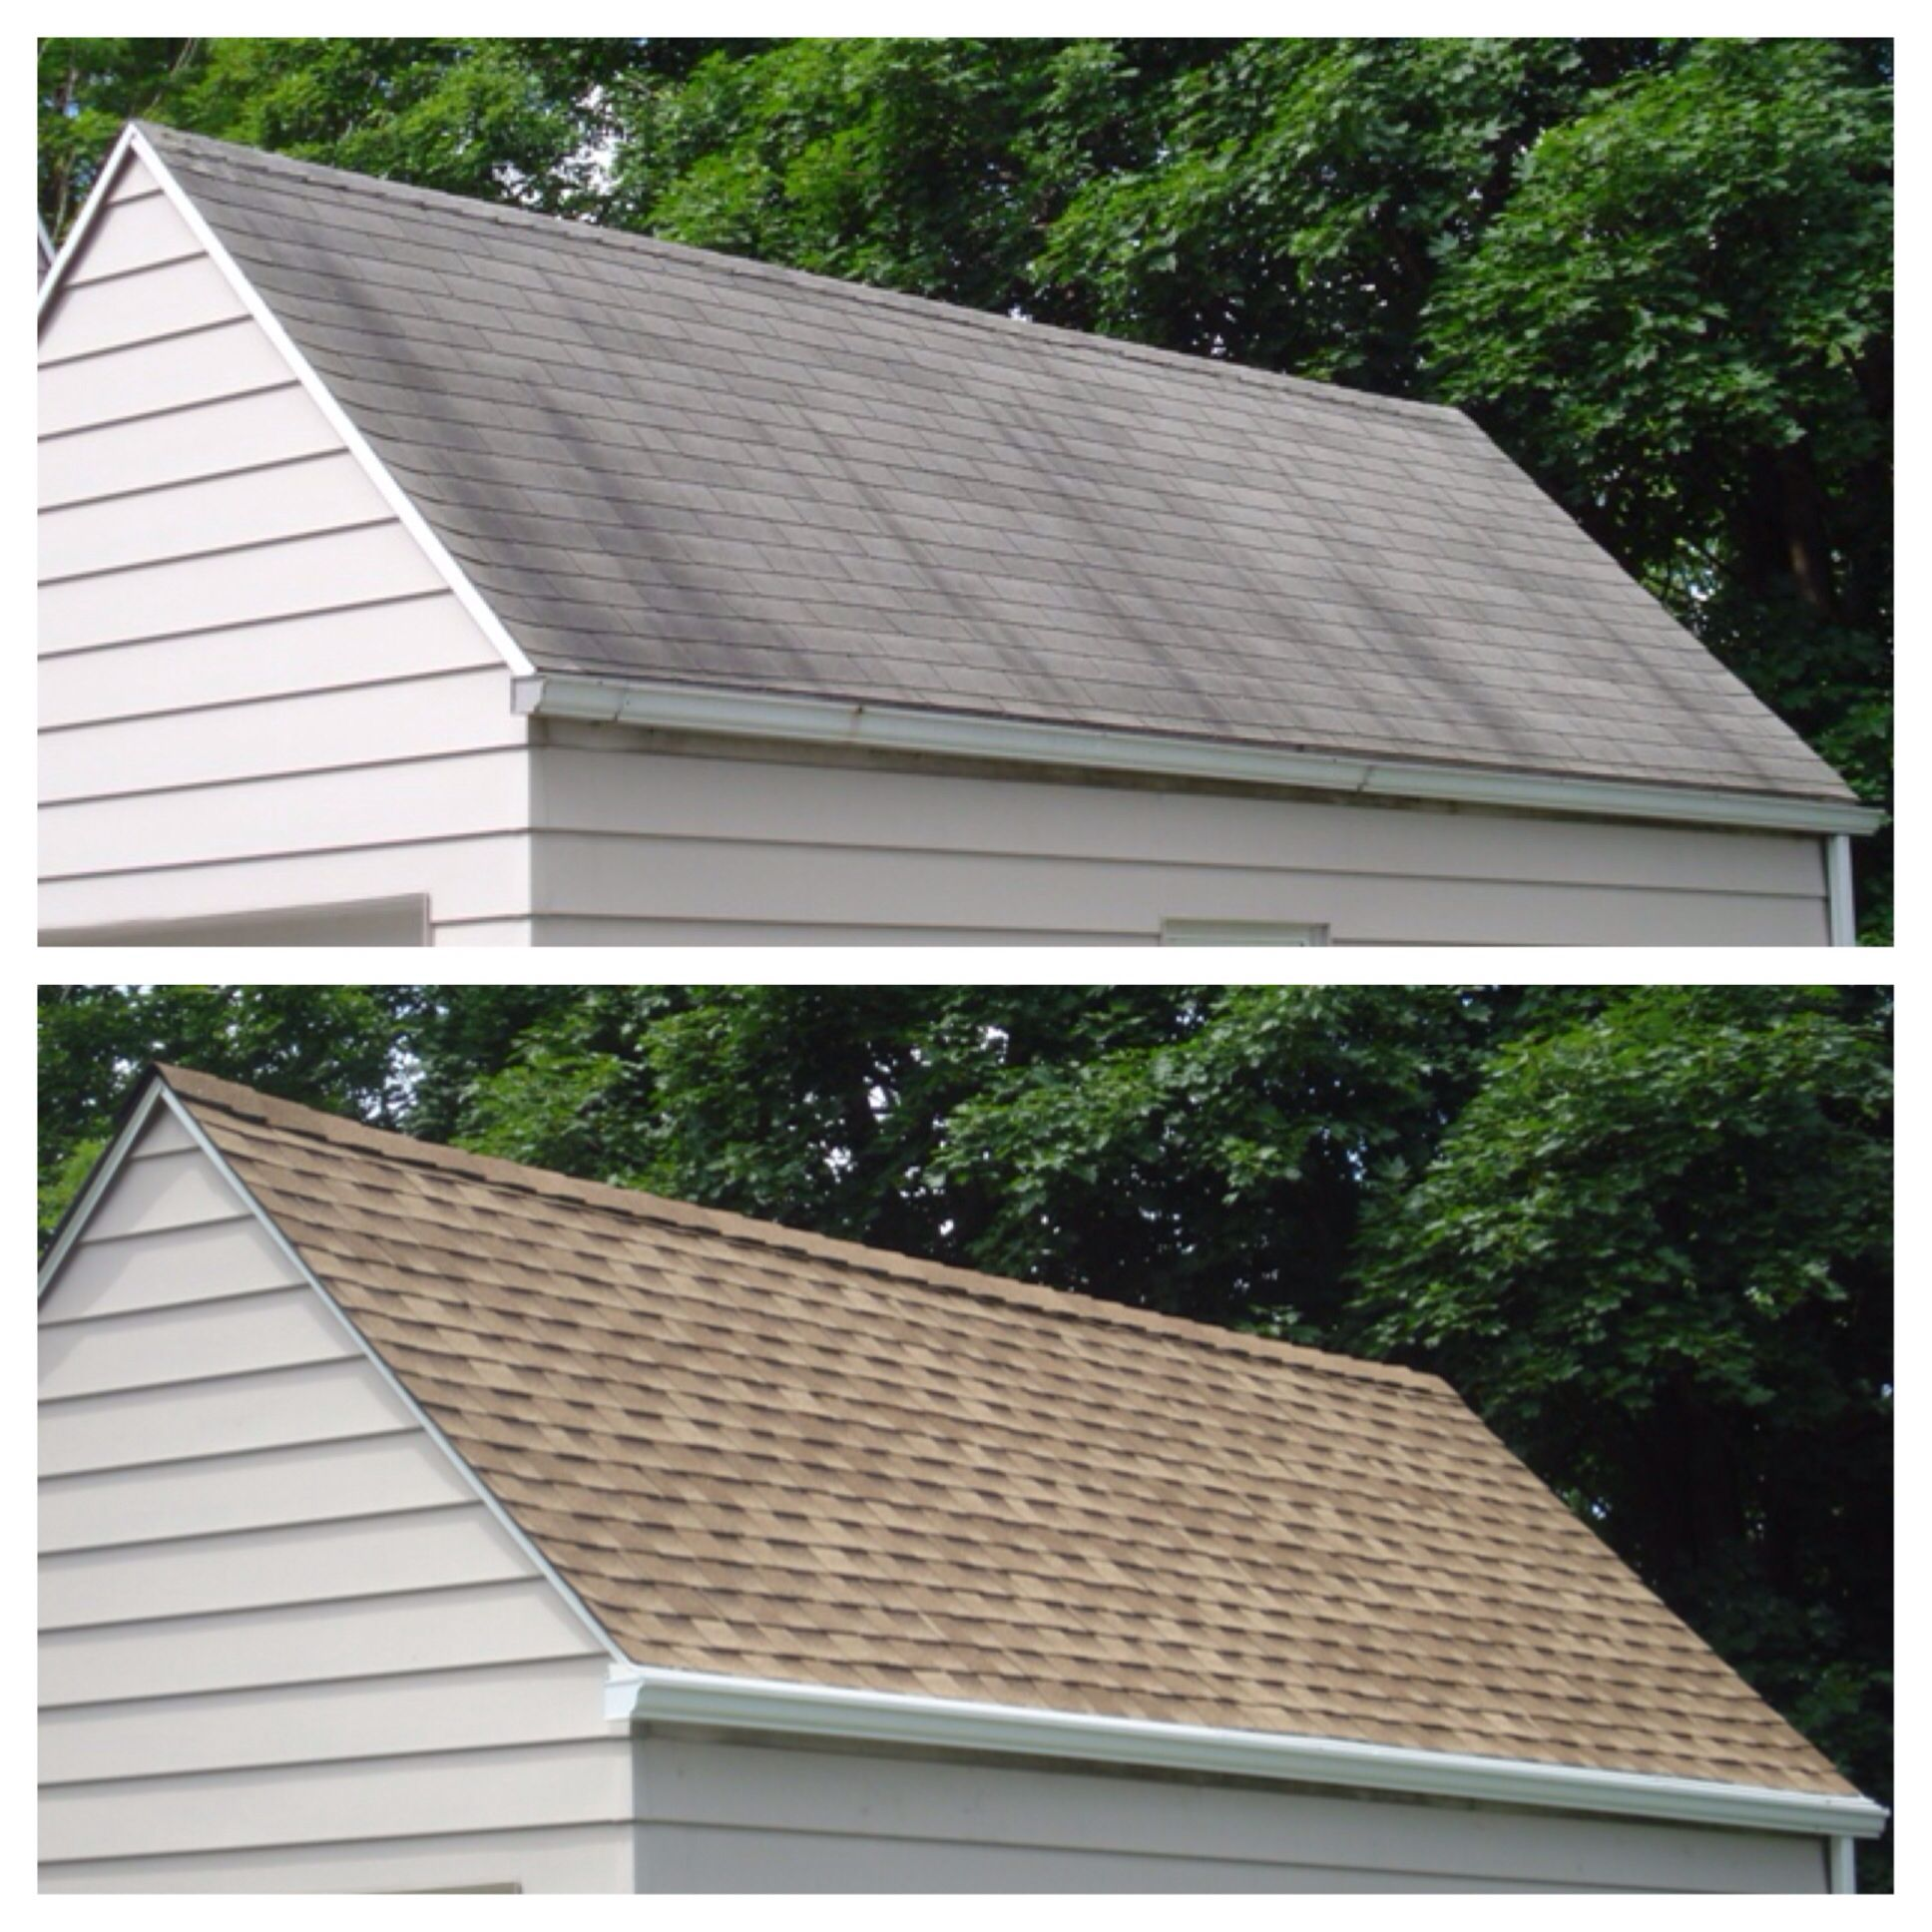 Best Completed Roofing Job With Certainteed Architectural 400 x 300